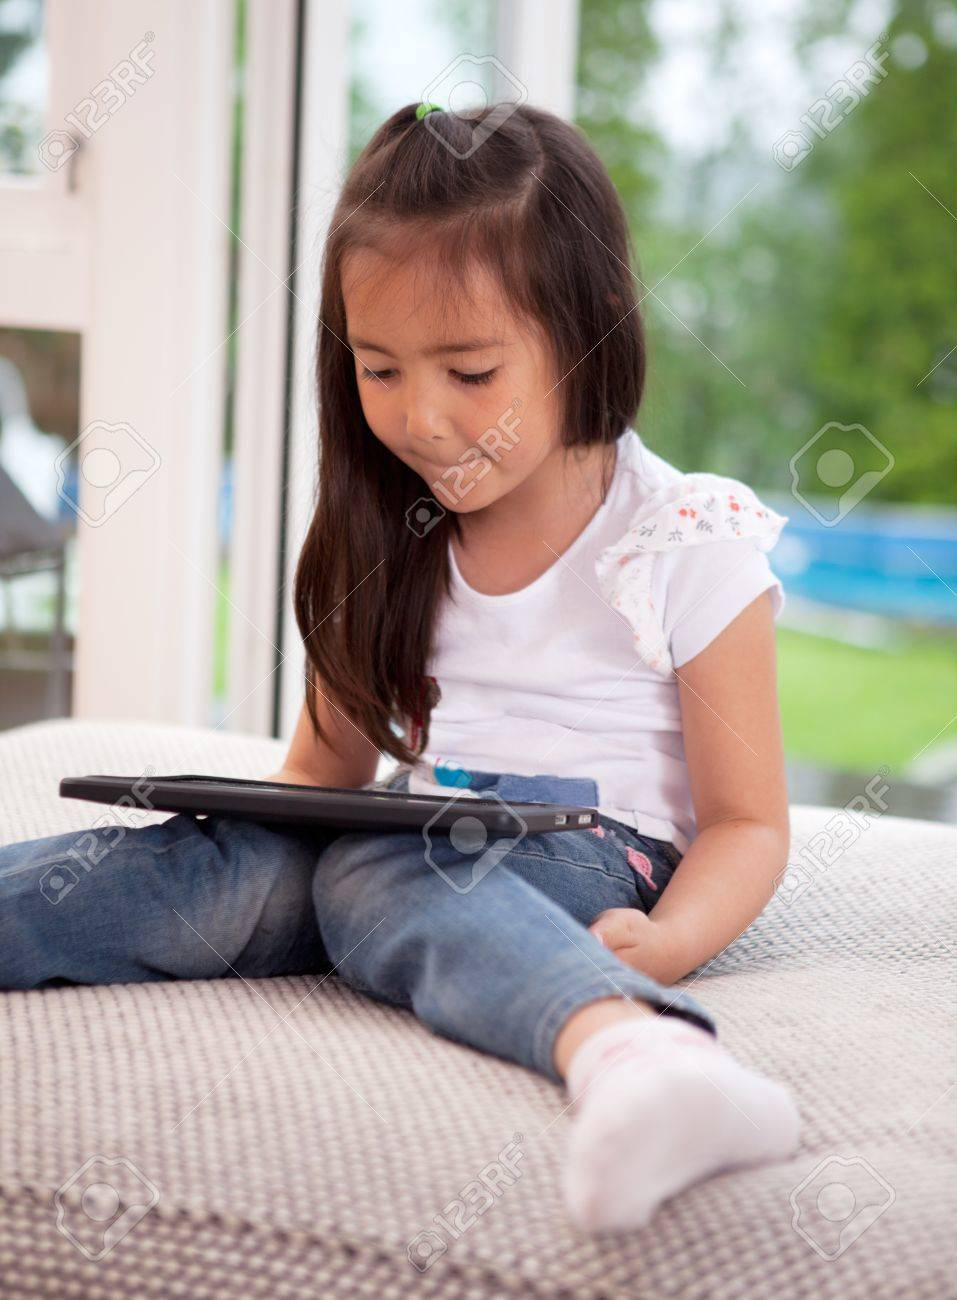 Young girl child looking at a digital tablet sitting on a couch cushion Stock Photo - 10393419